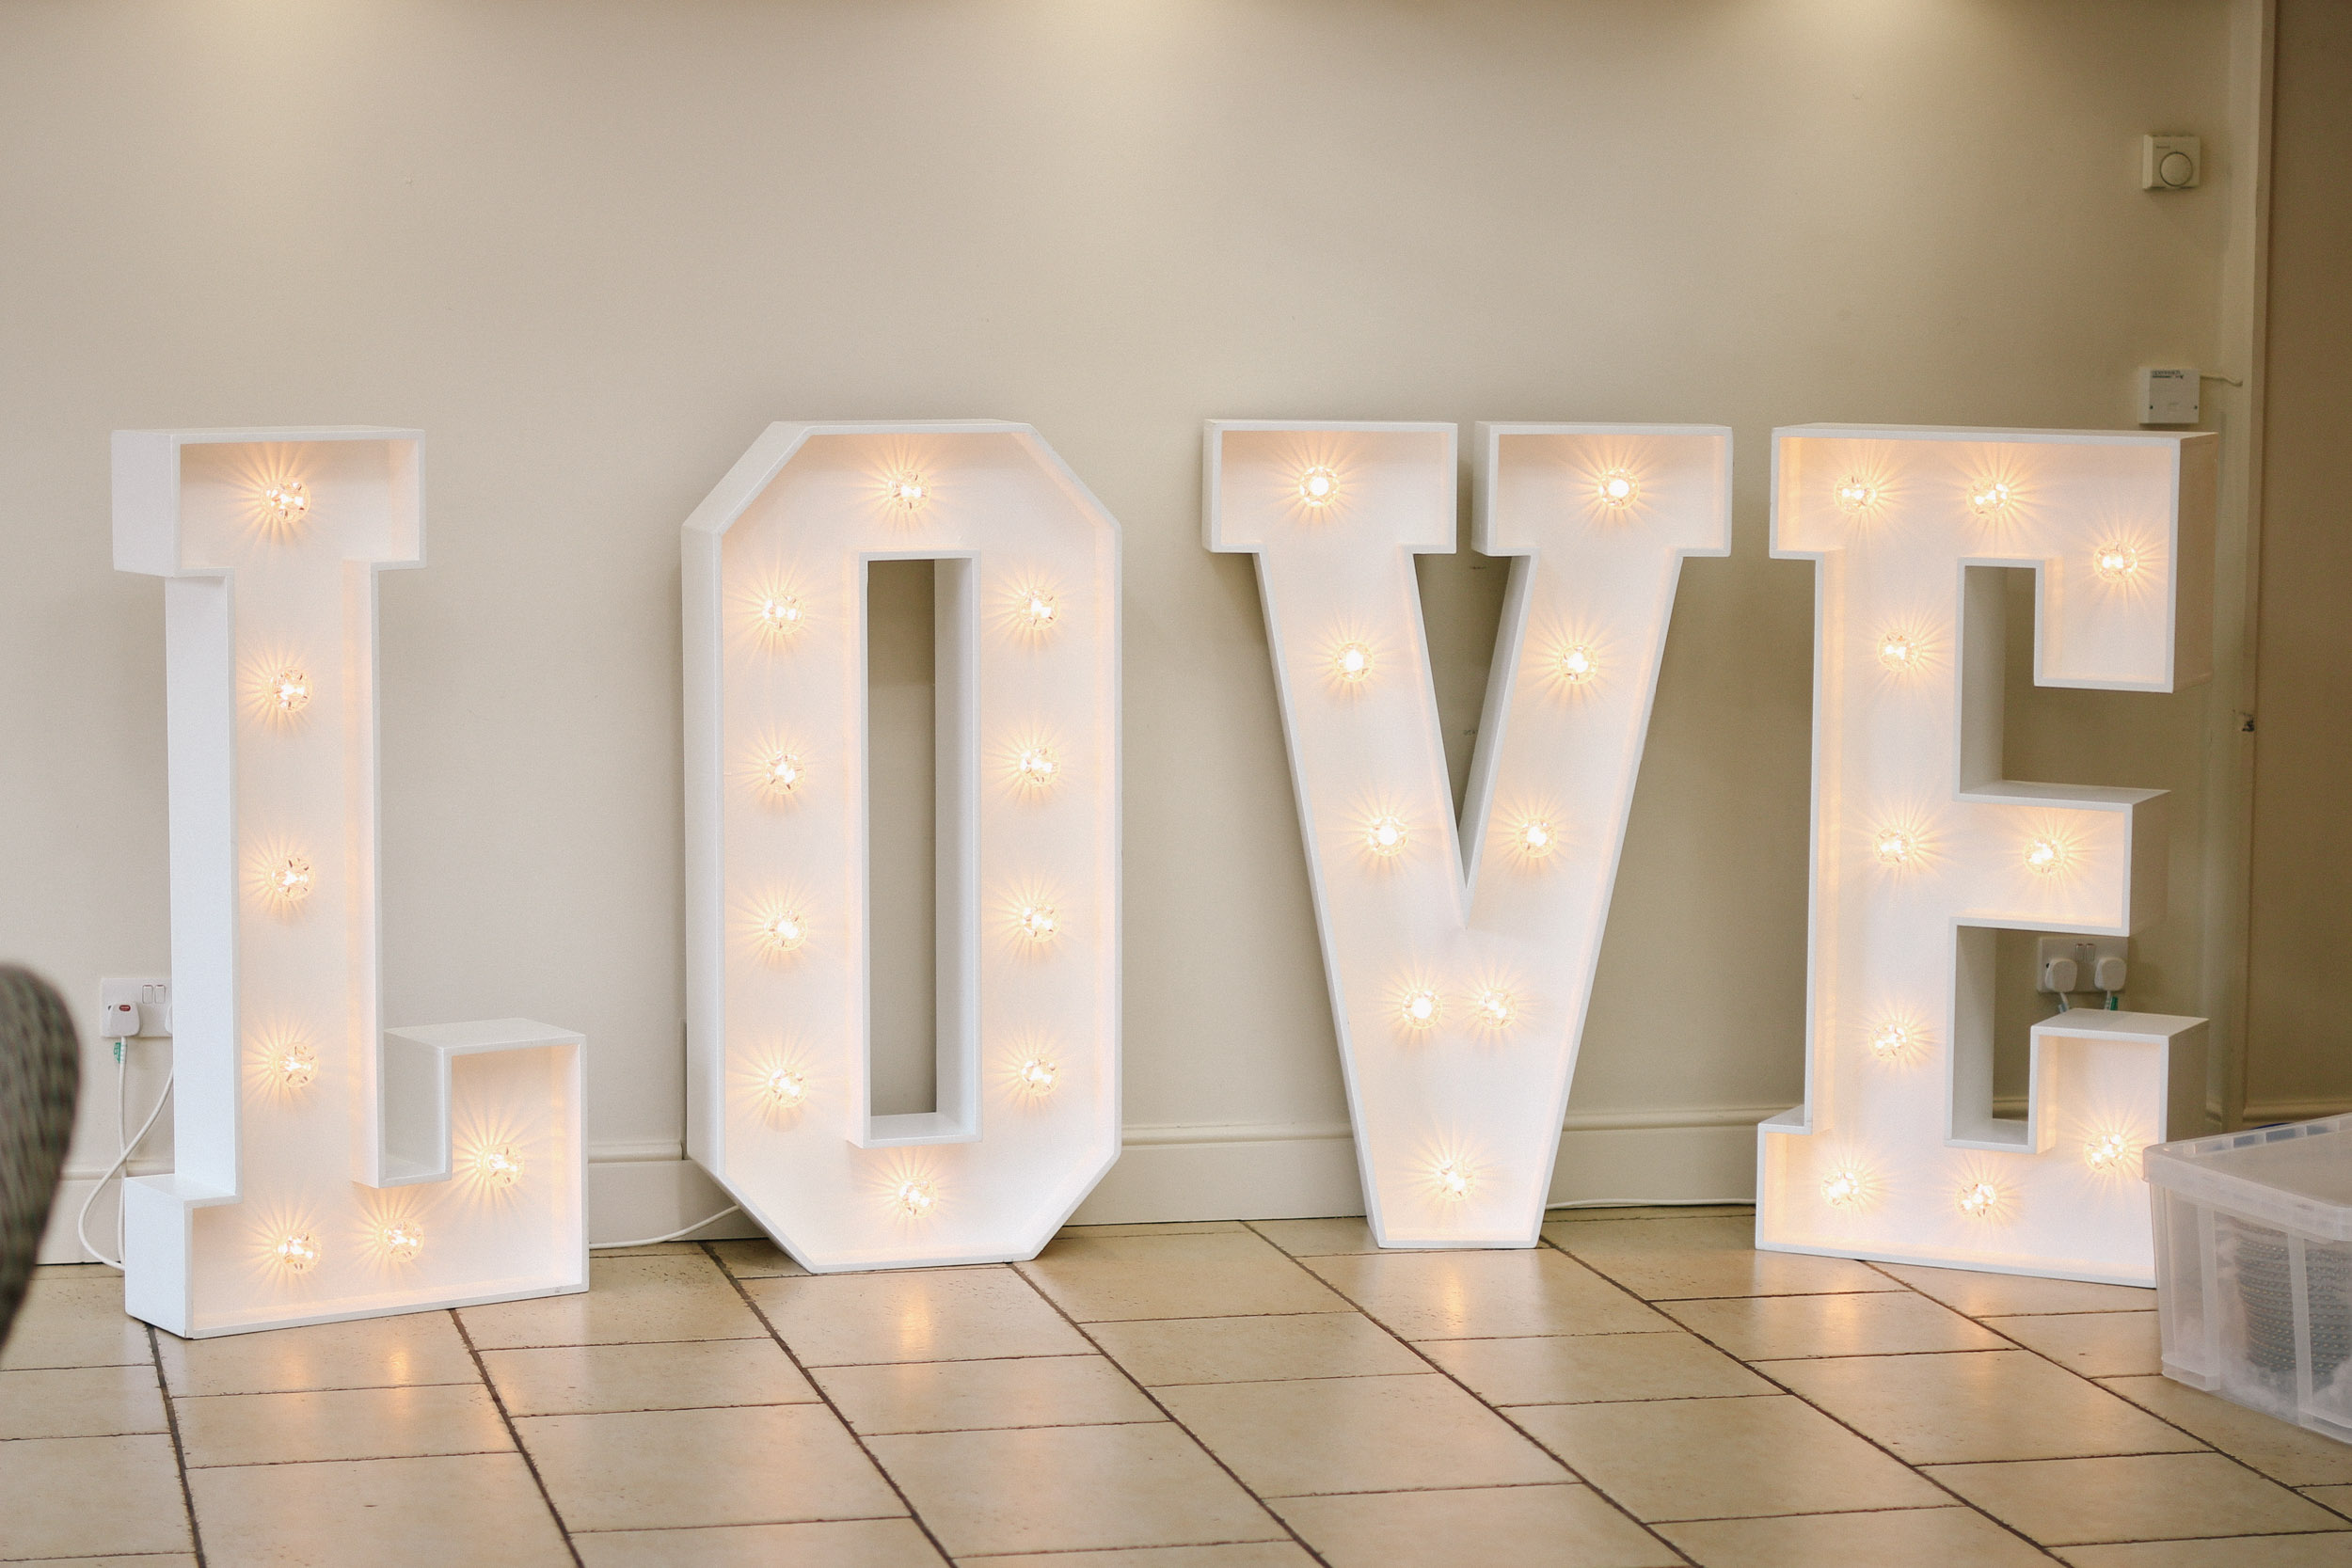 chair cover hire croydon cool outdoor folding chairs 4ft illuminated love sign beyond expectations weddings